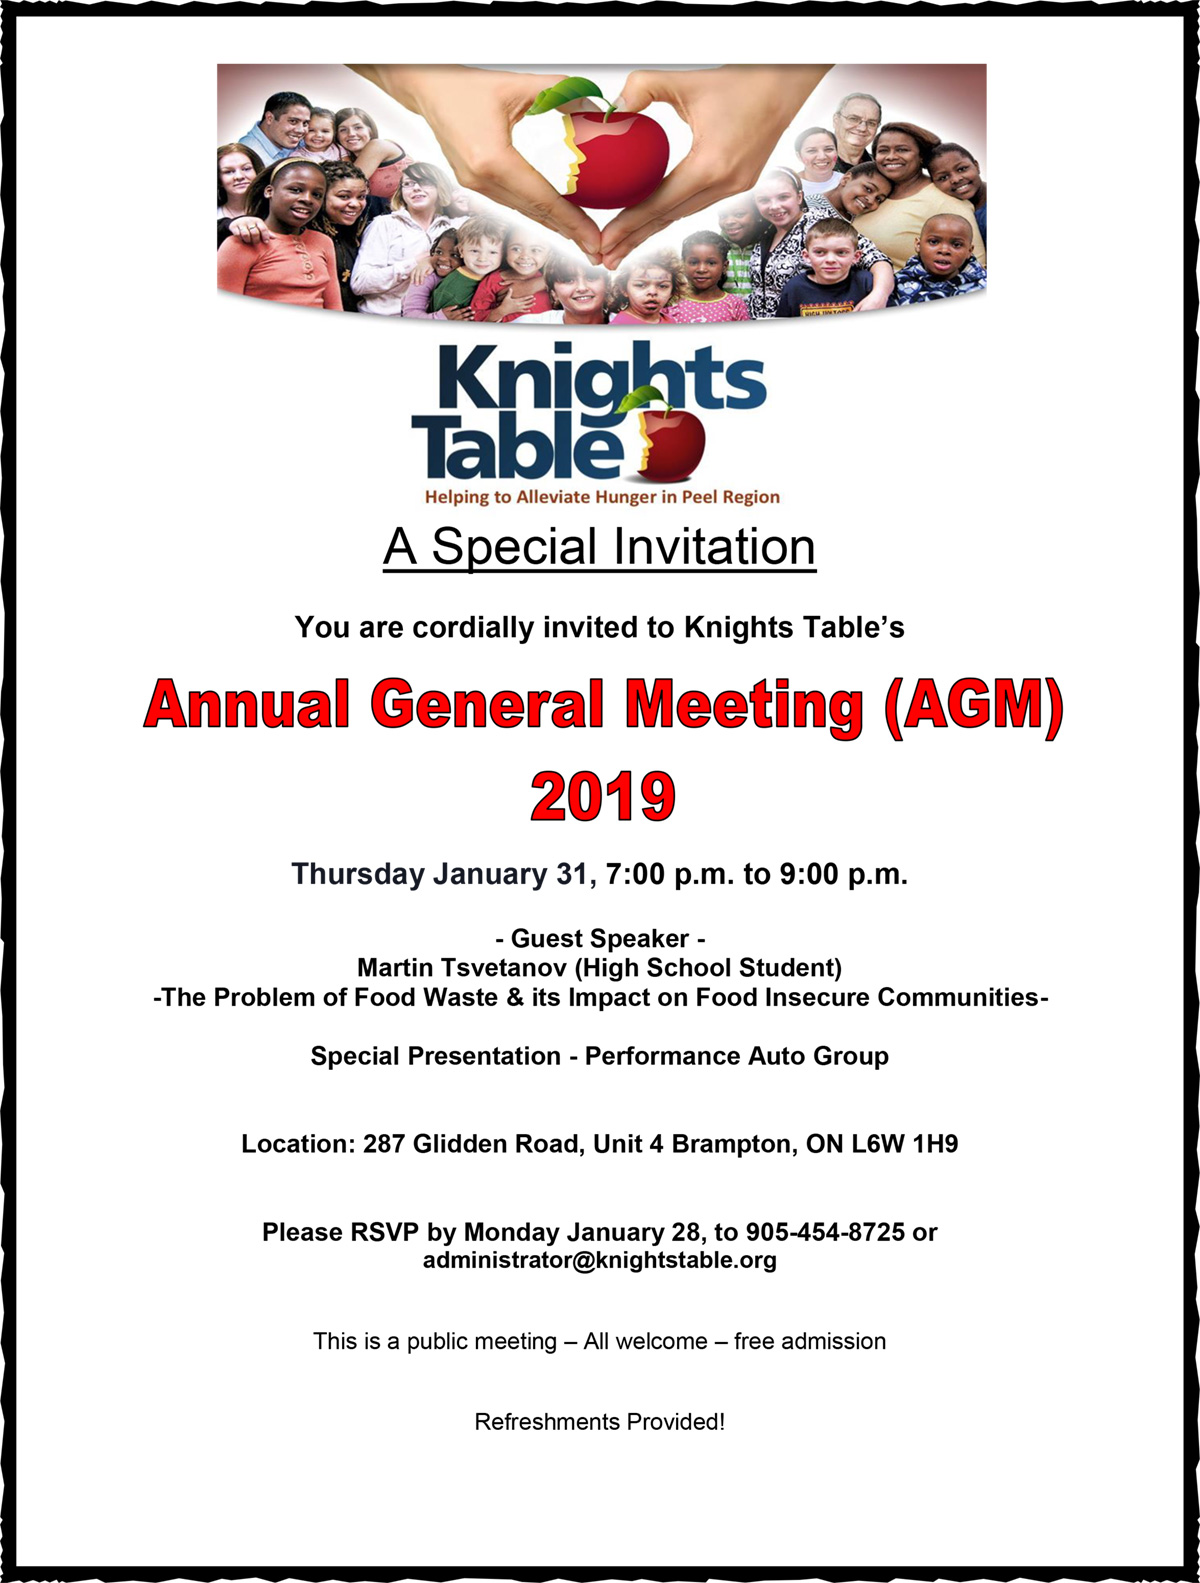 Annual General Meeting (AGM) 2019